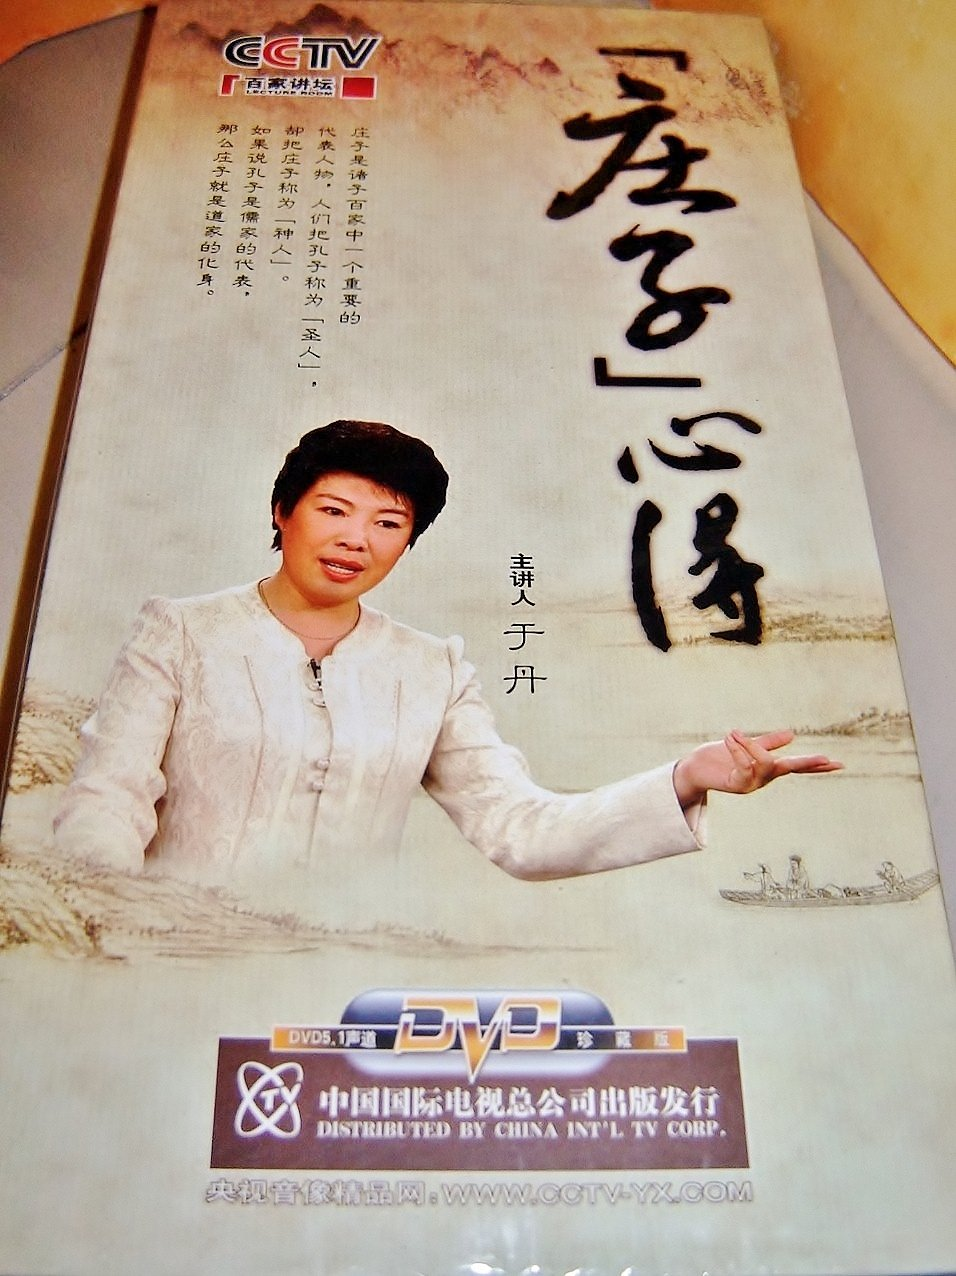 Zhuangzi experience CCTV Lowest price challenge Lecture DVD 5 Room PAL Outlet SALE